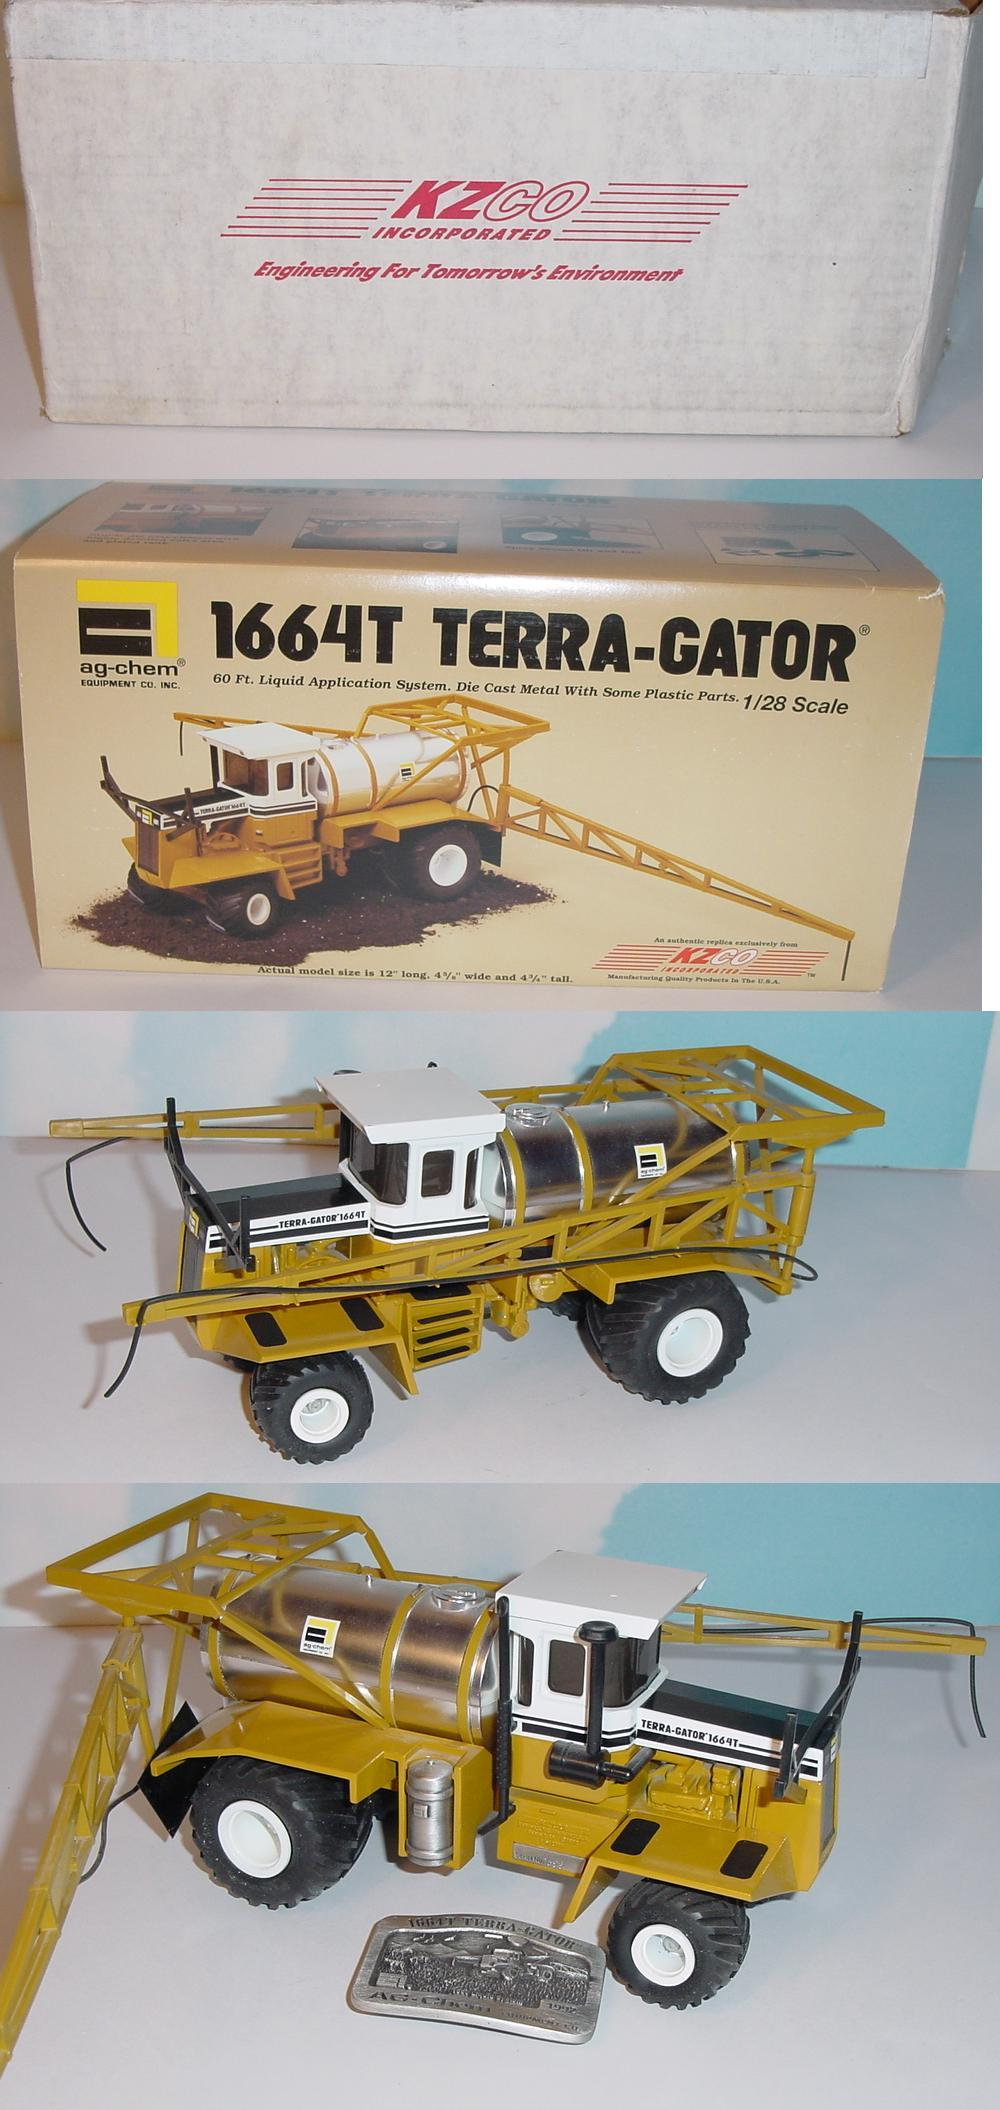 Think, that Terra gator toys remarkable